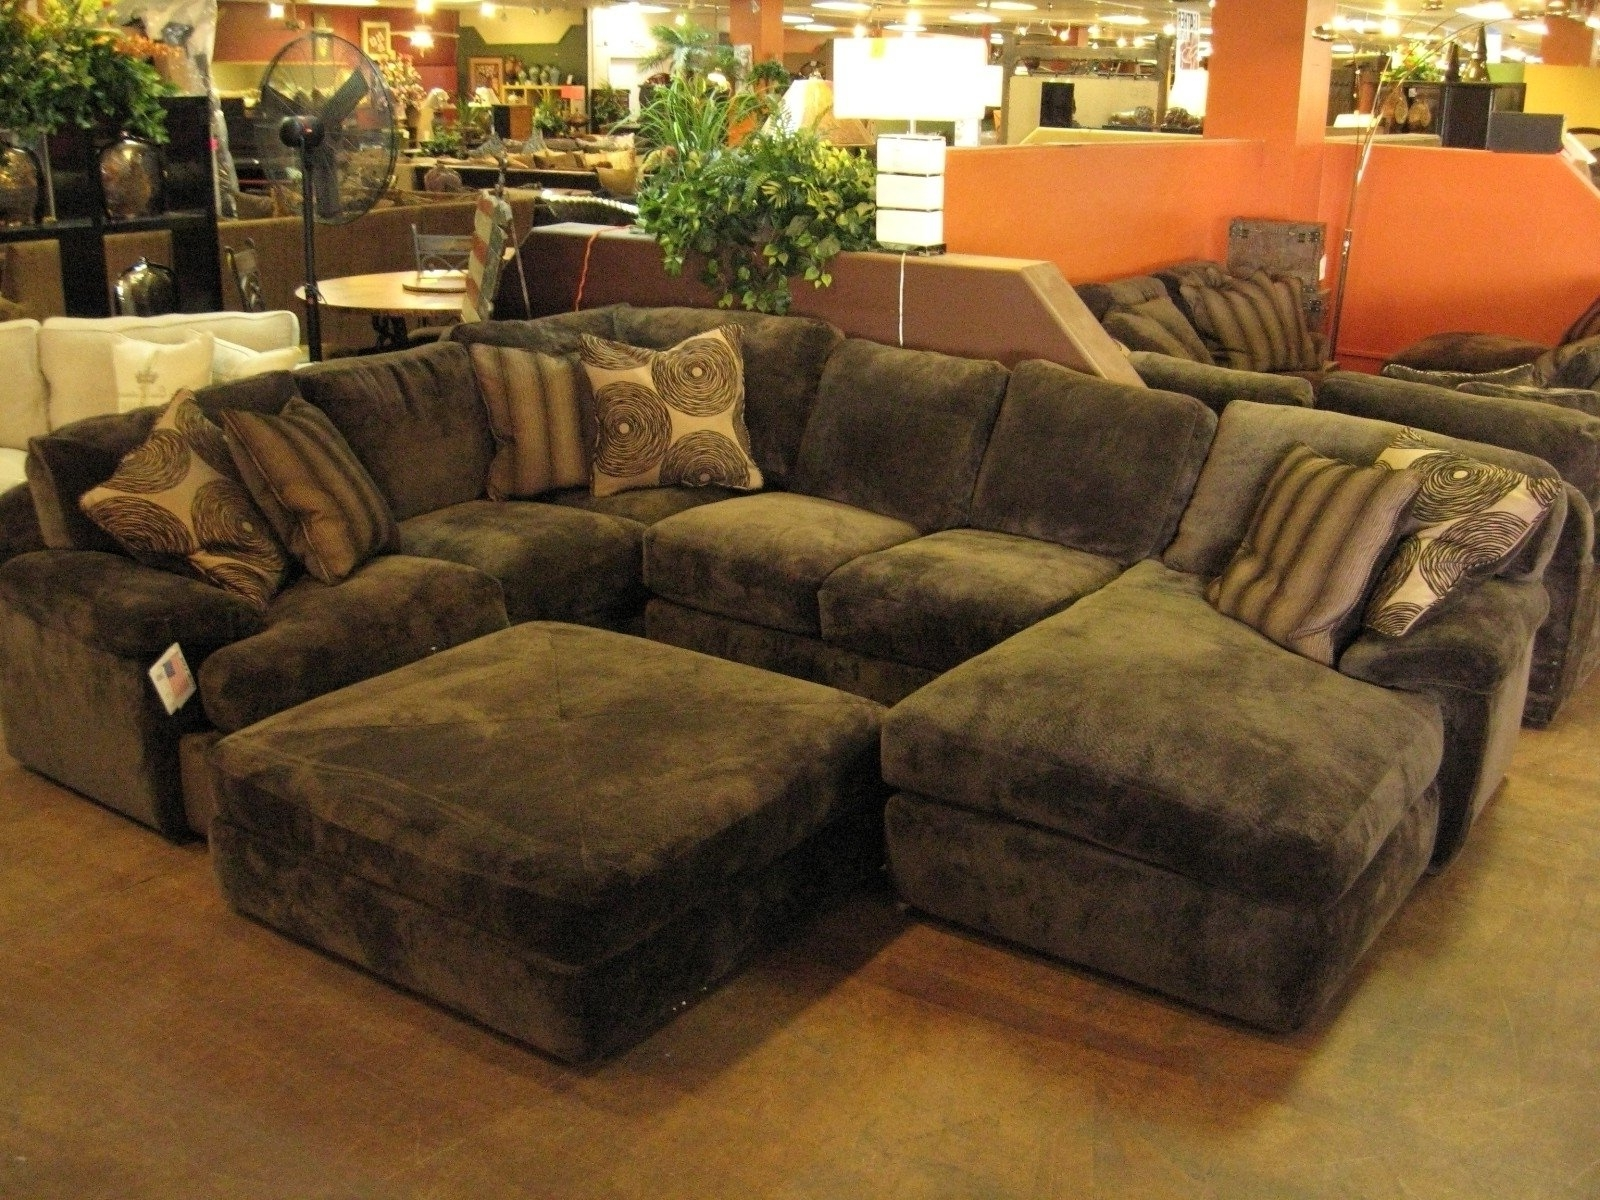 Famous Oversized Sectional Sofas Pertaining To Interior Luxury Oversized Sectional Sofa For Awesome Living Room (View 8 of 20)